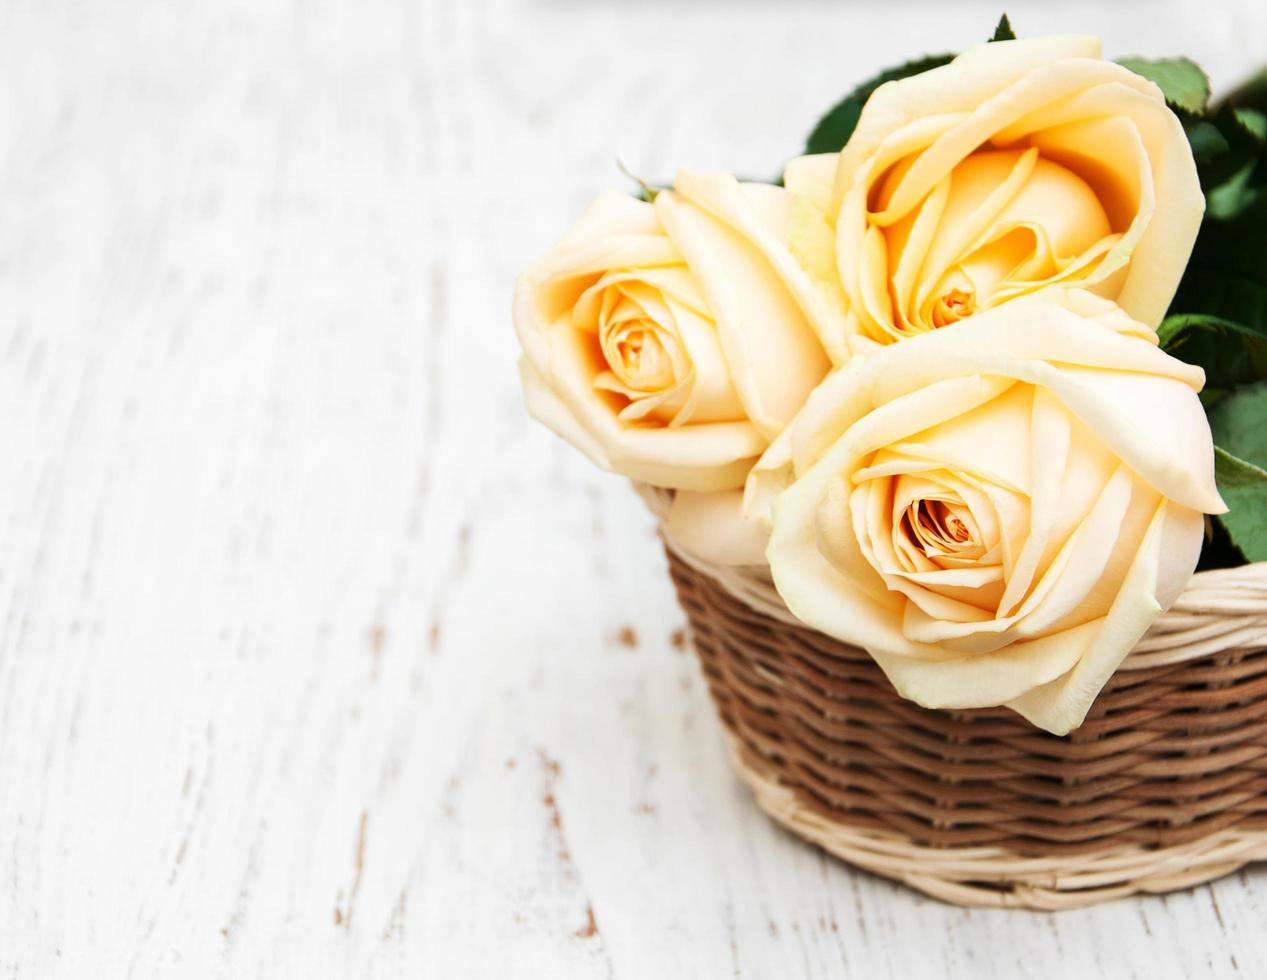 Basket with roses on an old wooden table photo